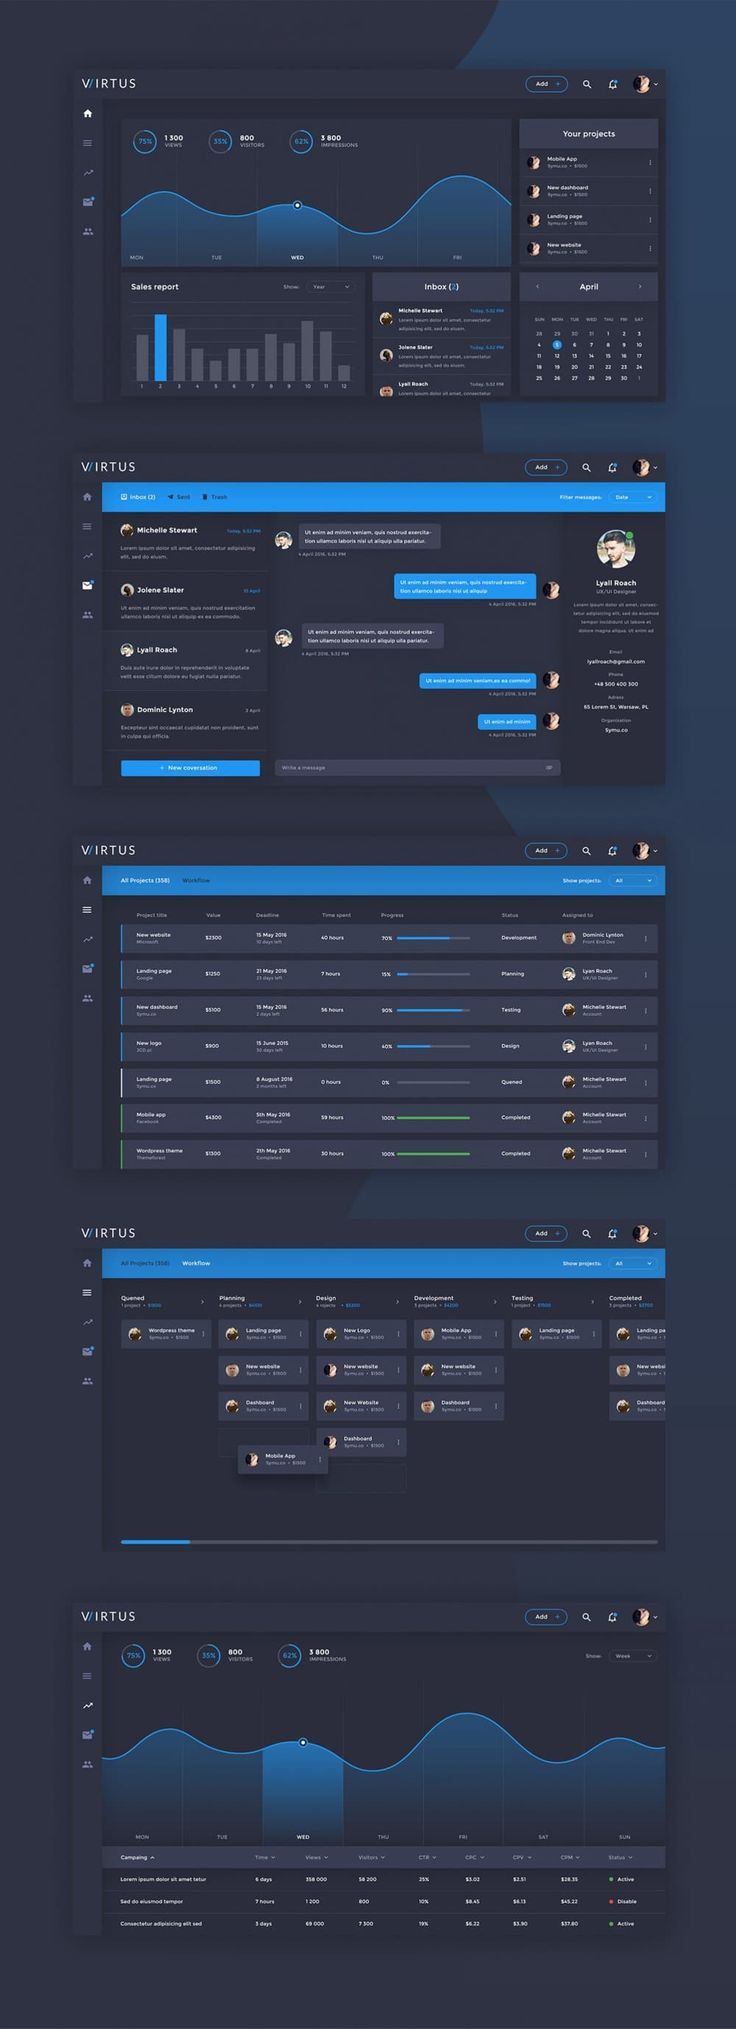 This poat showcases the best collection of free dashboard ui design psd, you can... - Entwurf #interfacedesign